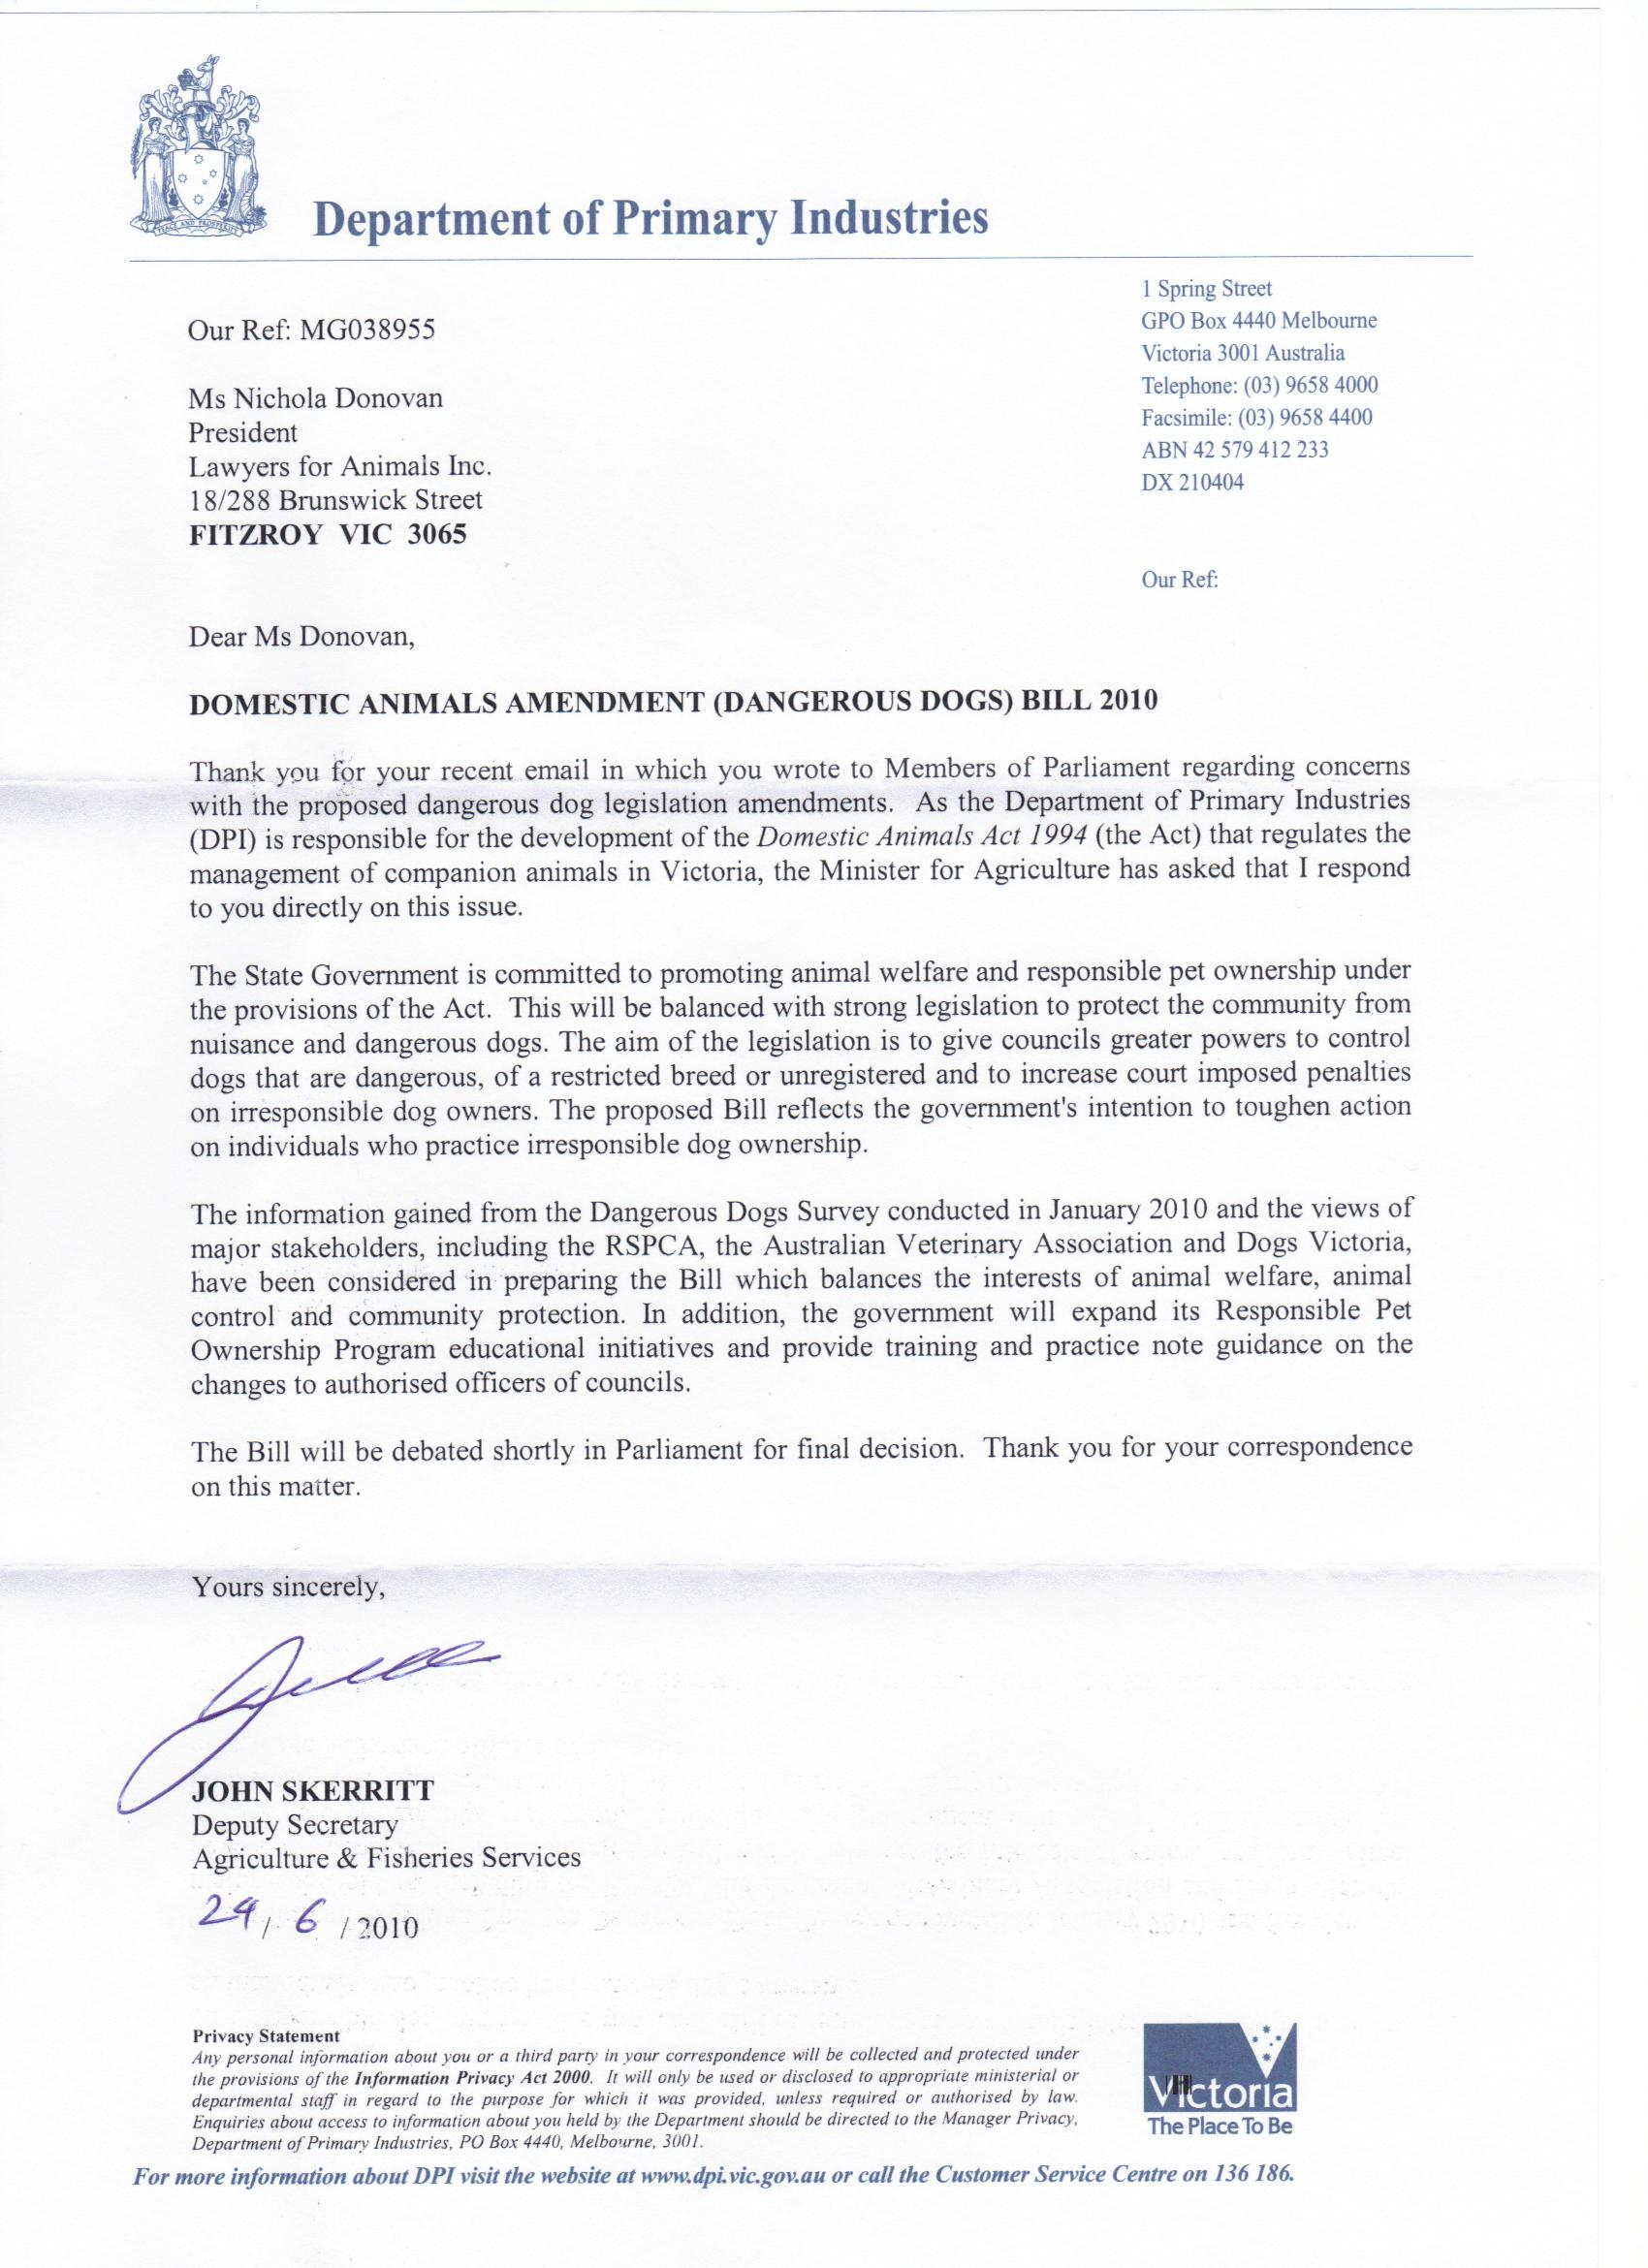 lfa-dogs-letter-from-dpi-240610-0011